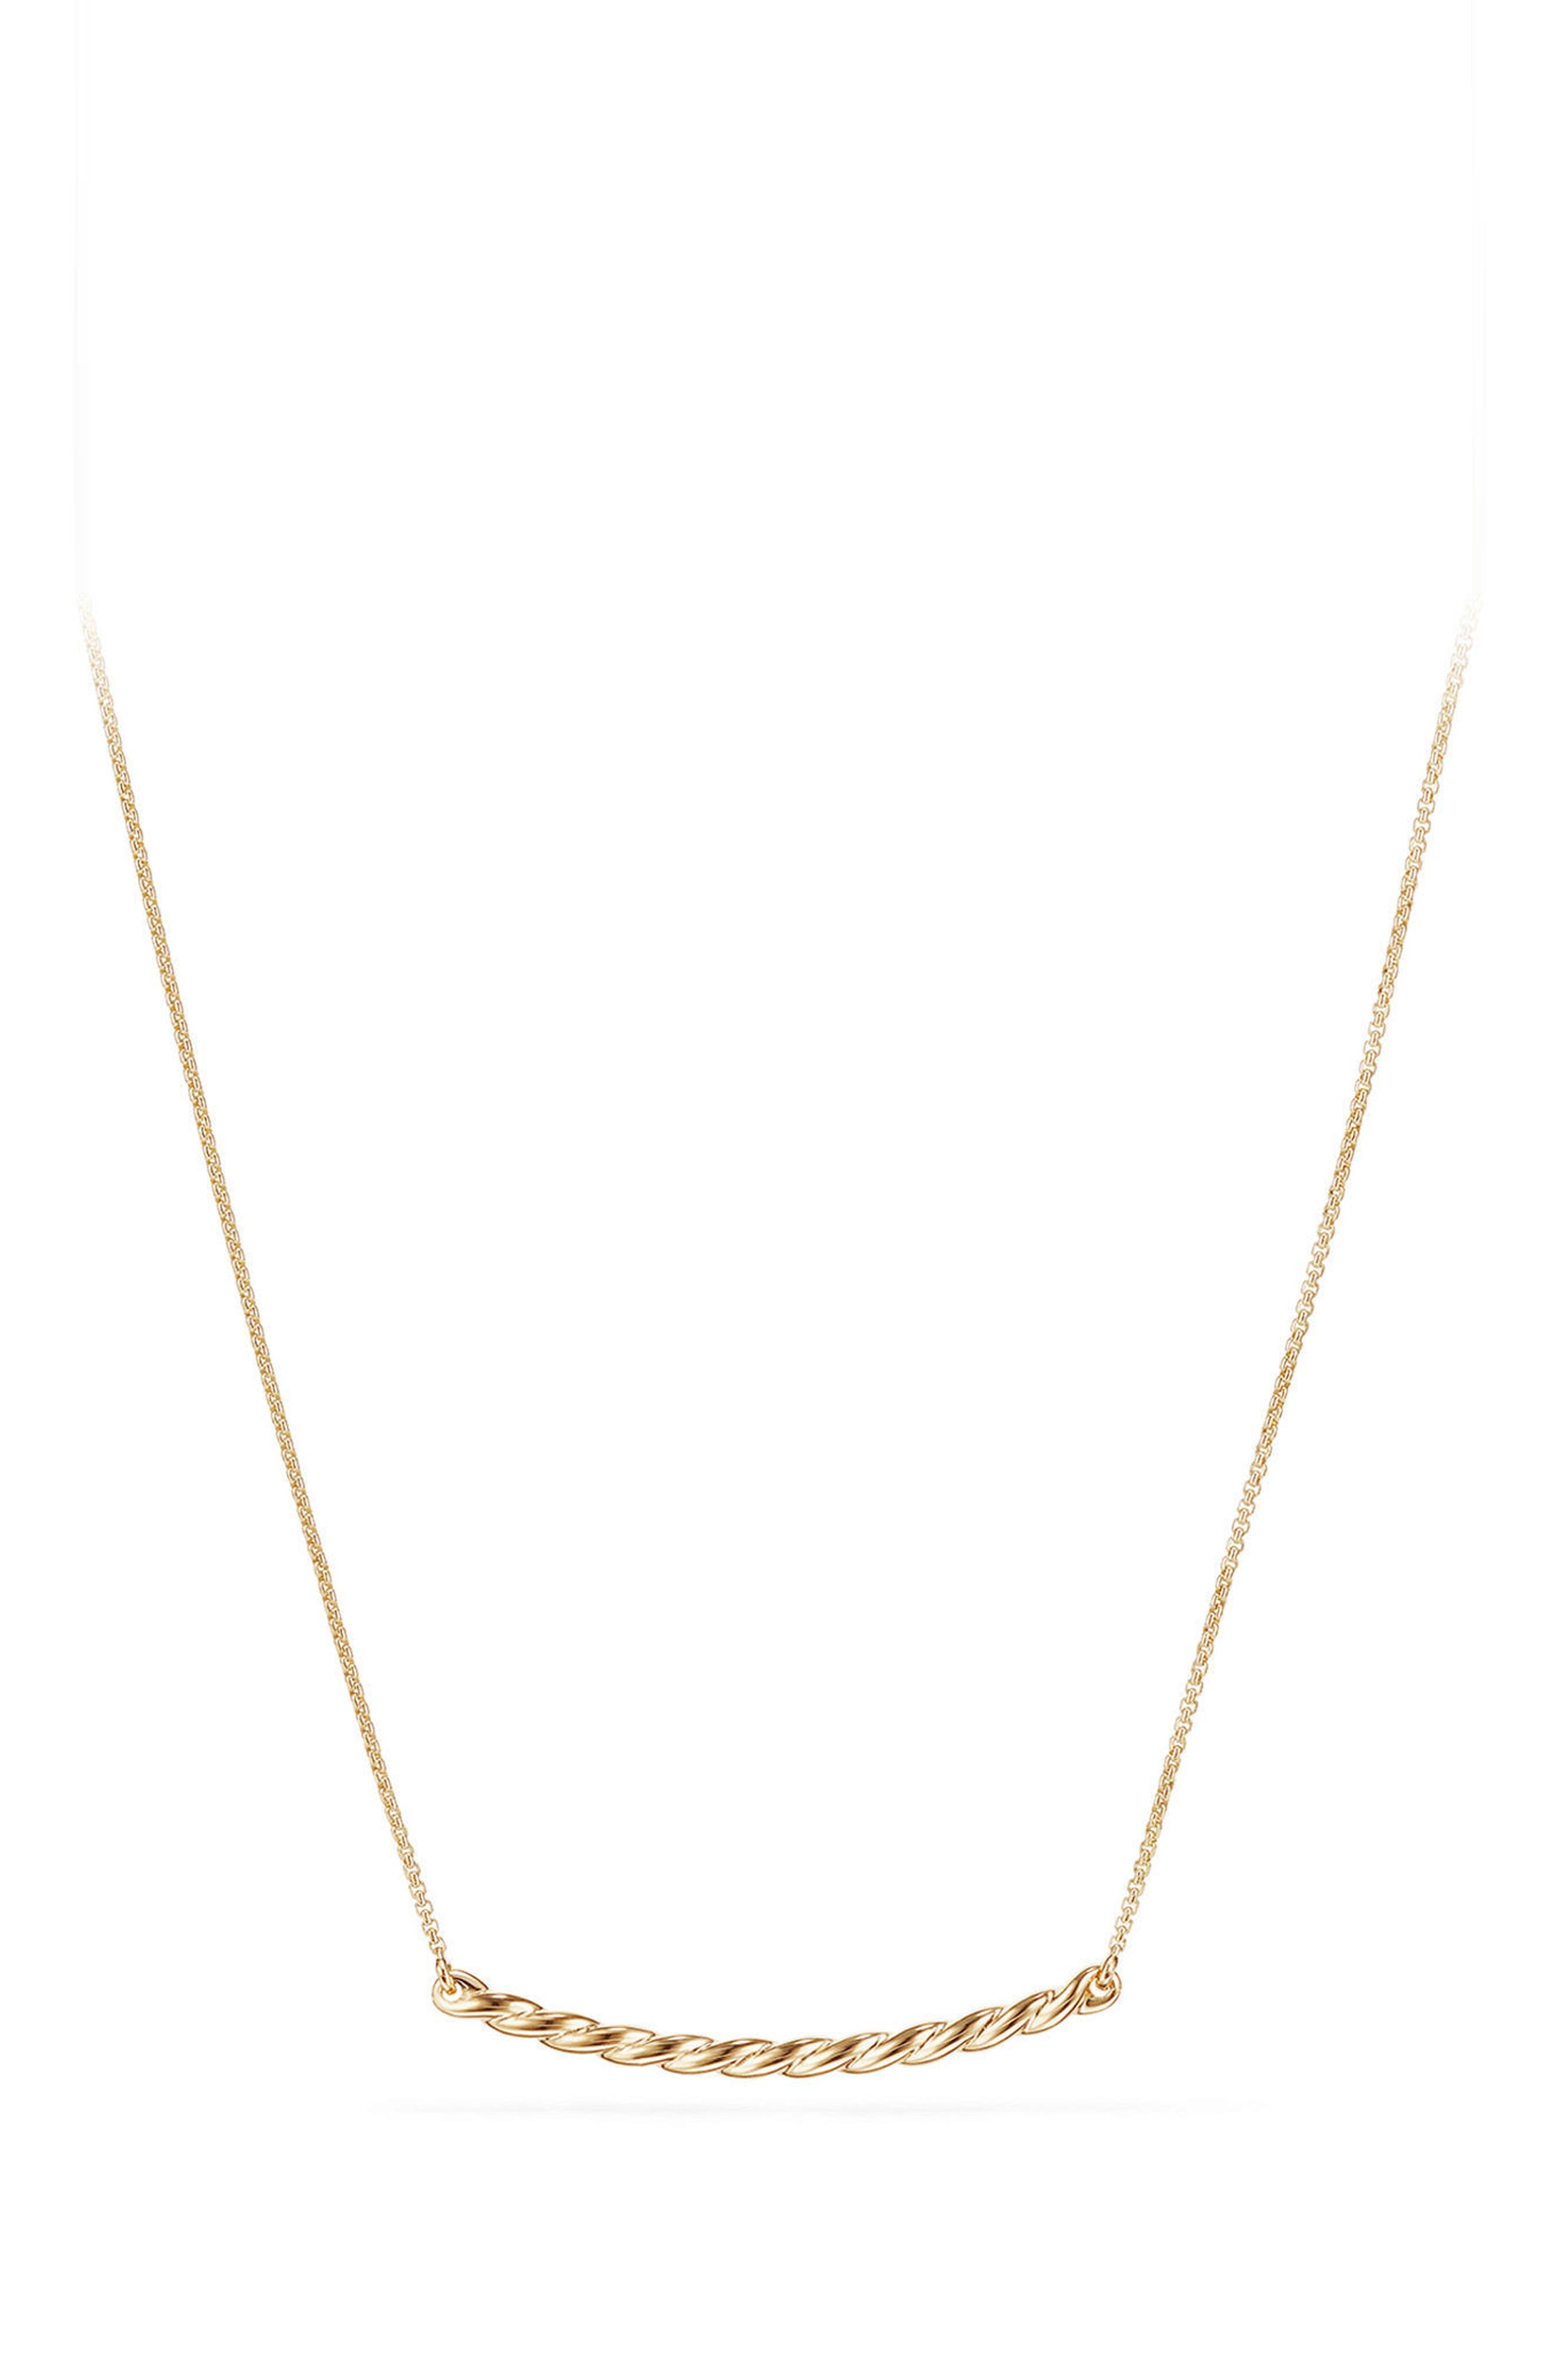 Paveflex Station Necklace in 18K Gold,                             Main thumbnail 1, color,                             YELLOW GOLD